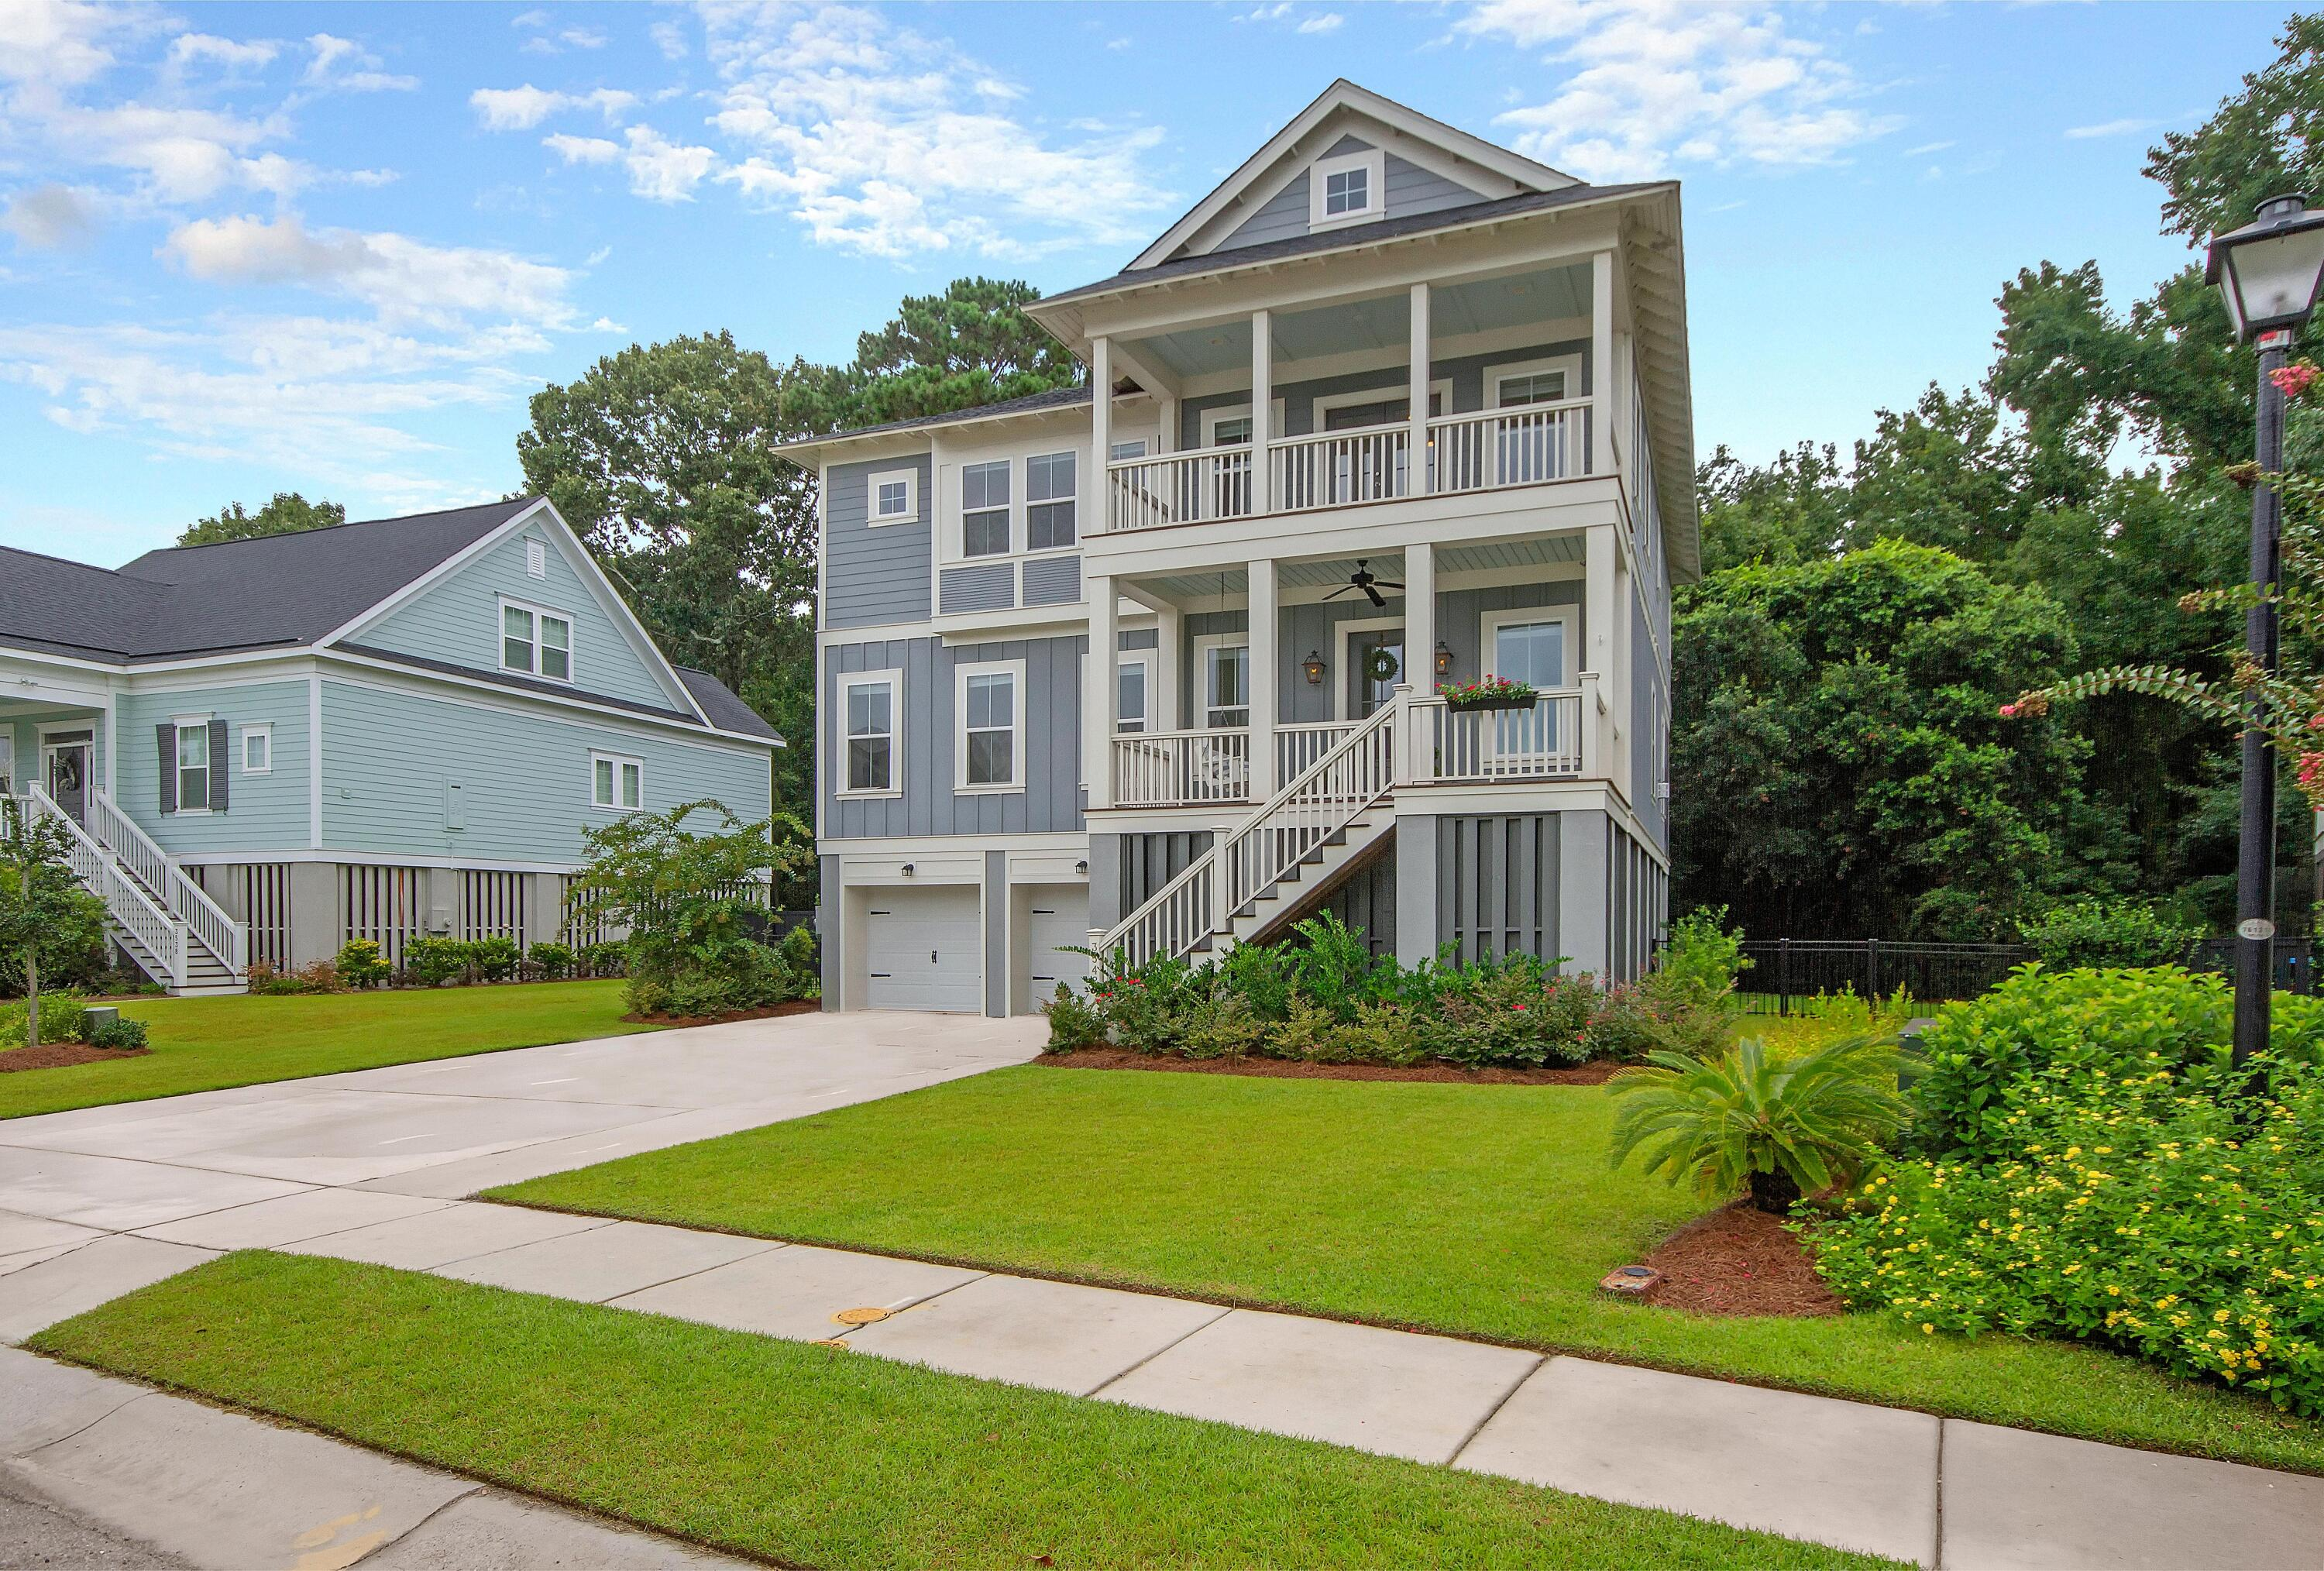 Stratton by the Sound Homes For Sale - 3542 Saltflat, Mount Pleasant, SC - 17